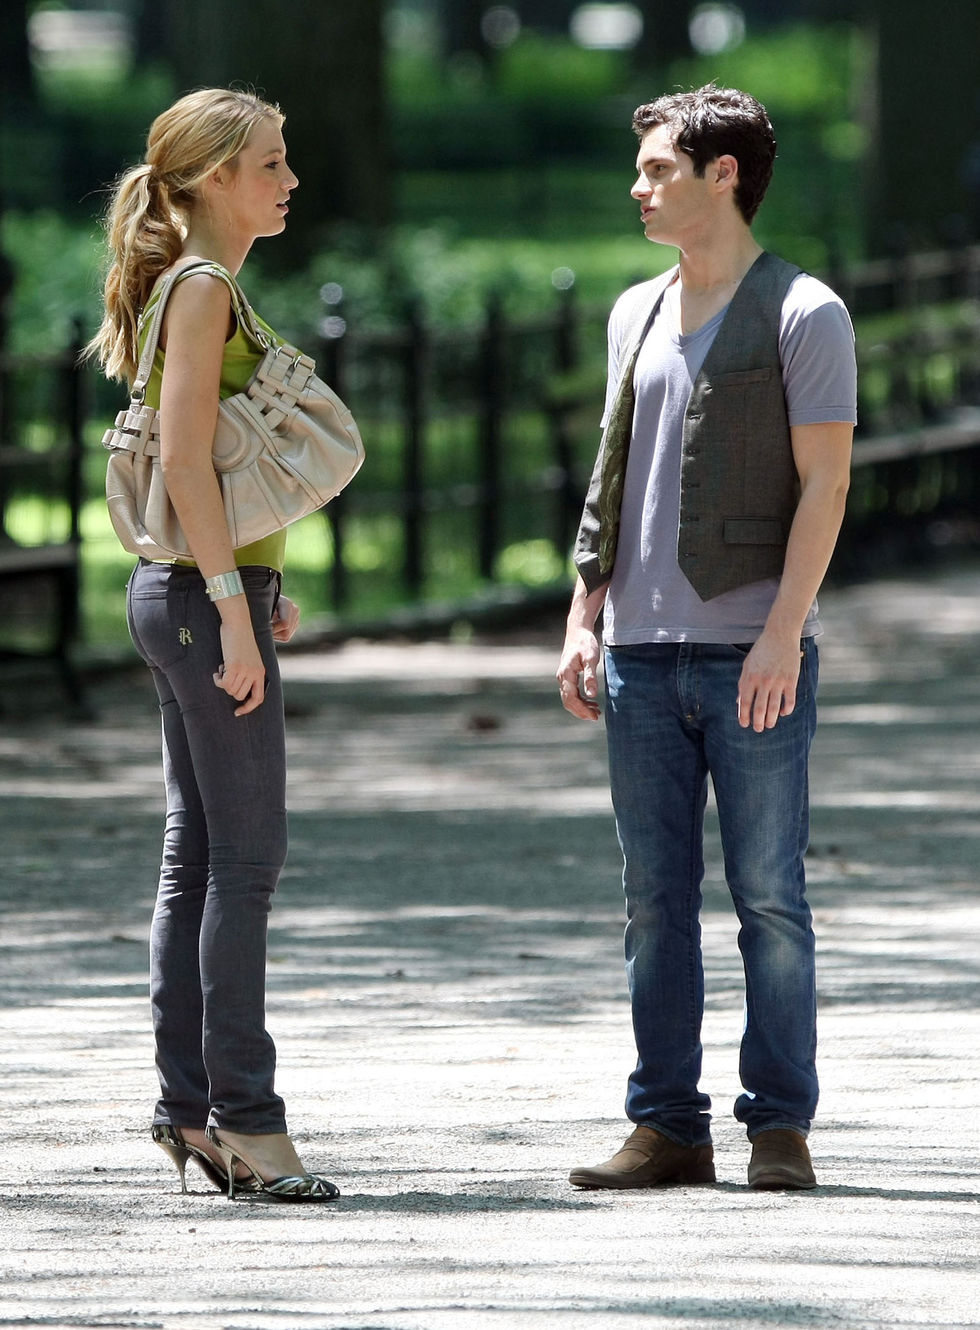 blake-lively-filming-gossip-girl-in-central-park-01